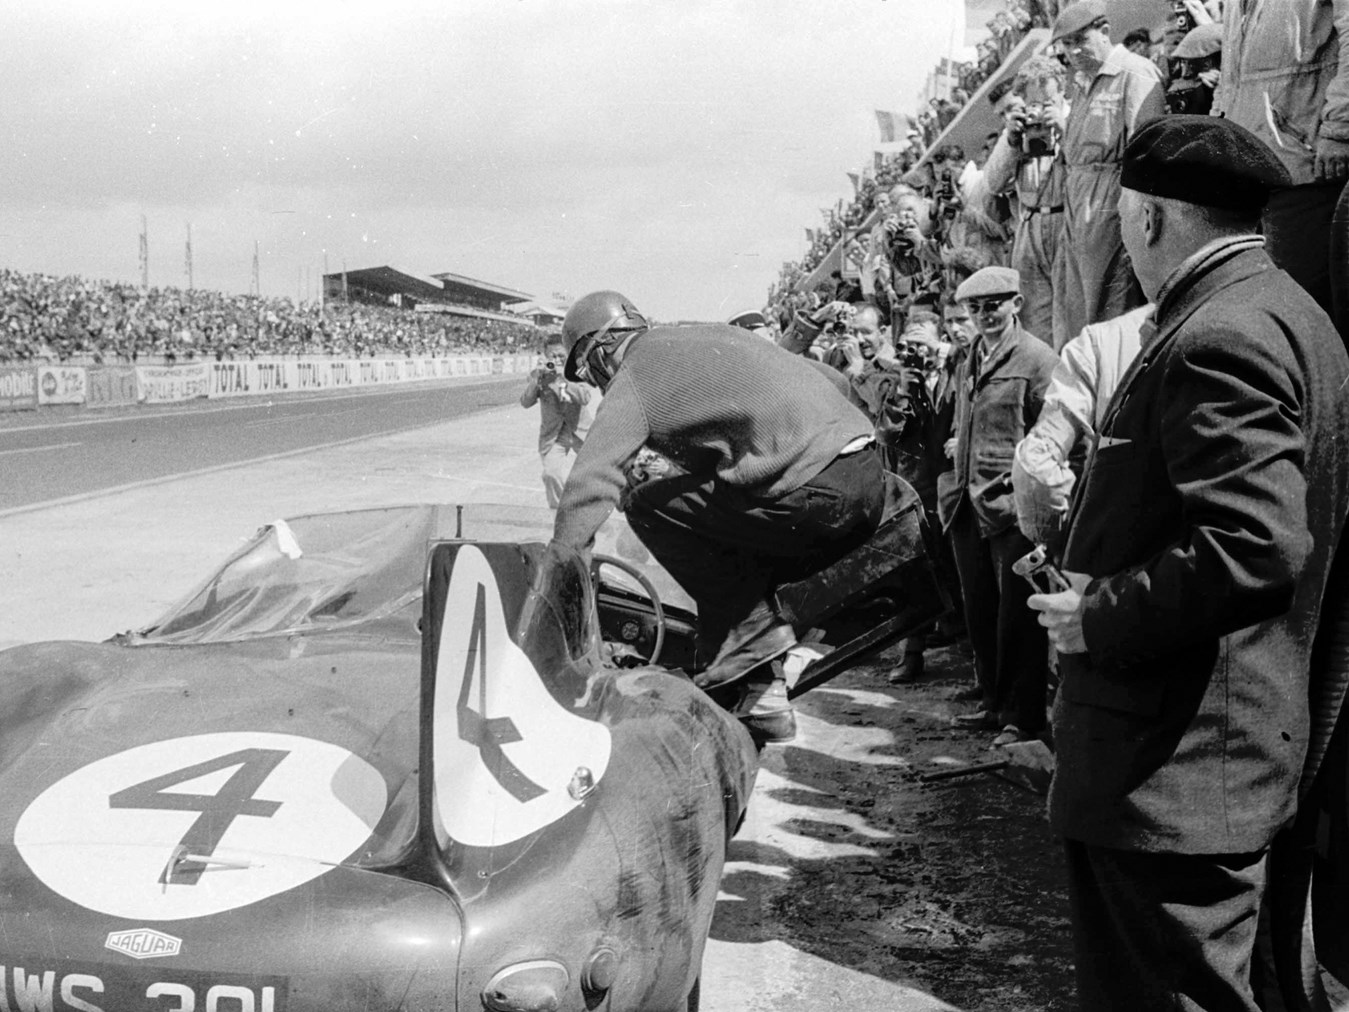 Ninian Sanderson jumps into XKD 501 during the 1956 Le Mans. (Picture courtesy LAT Photographic).